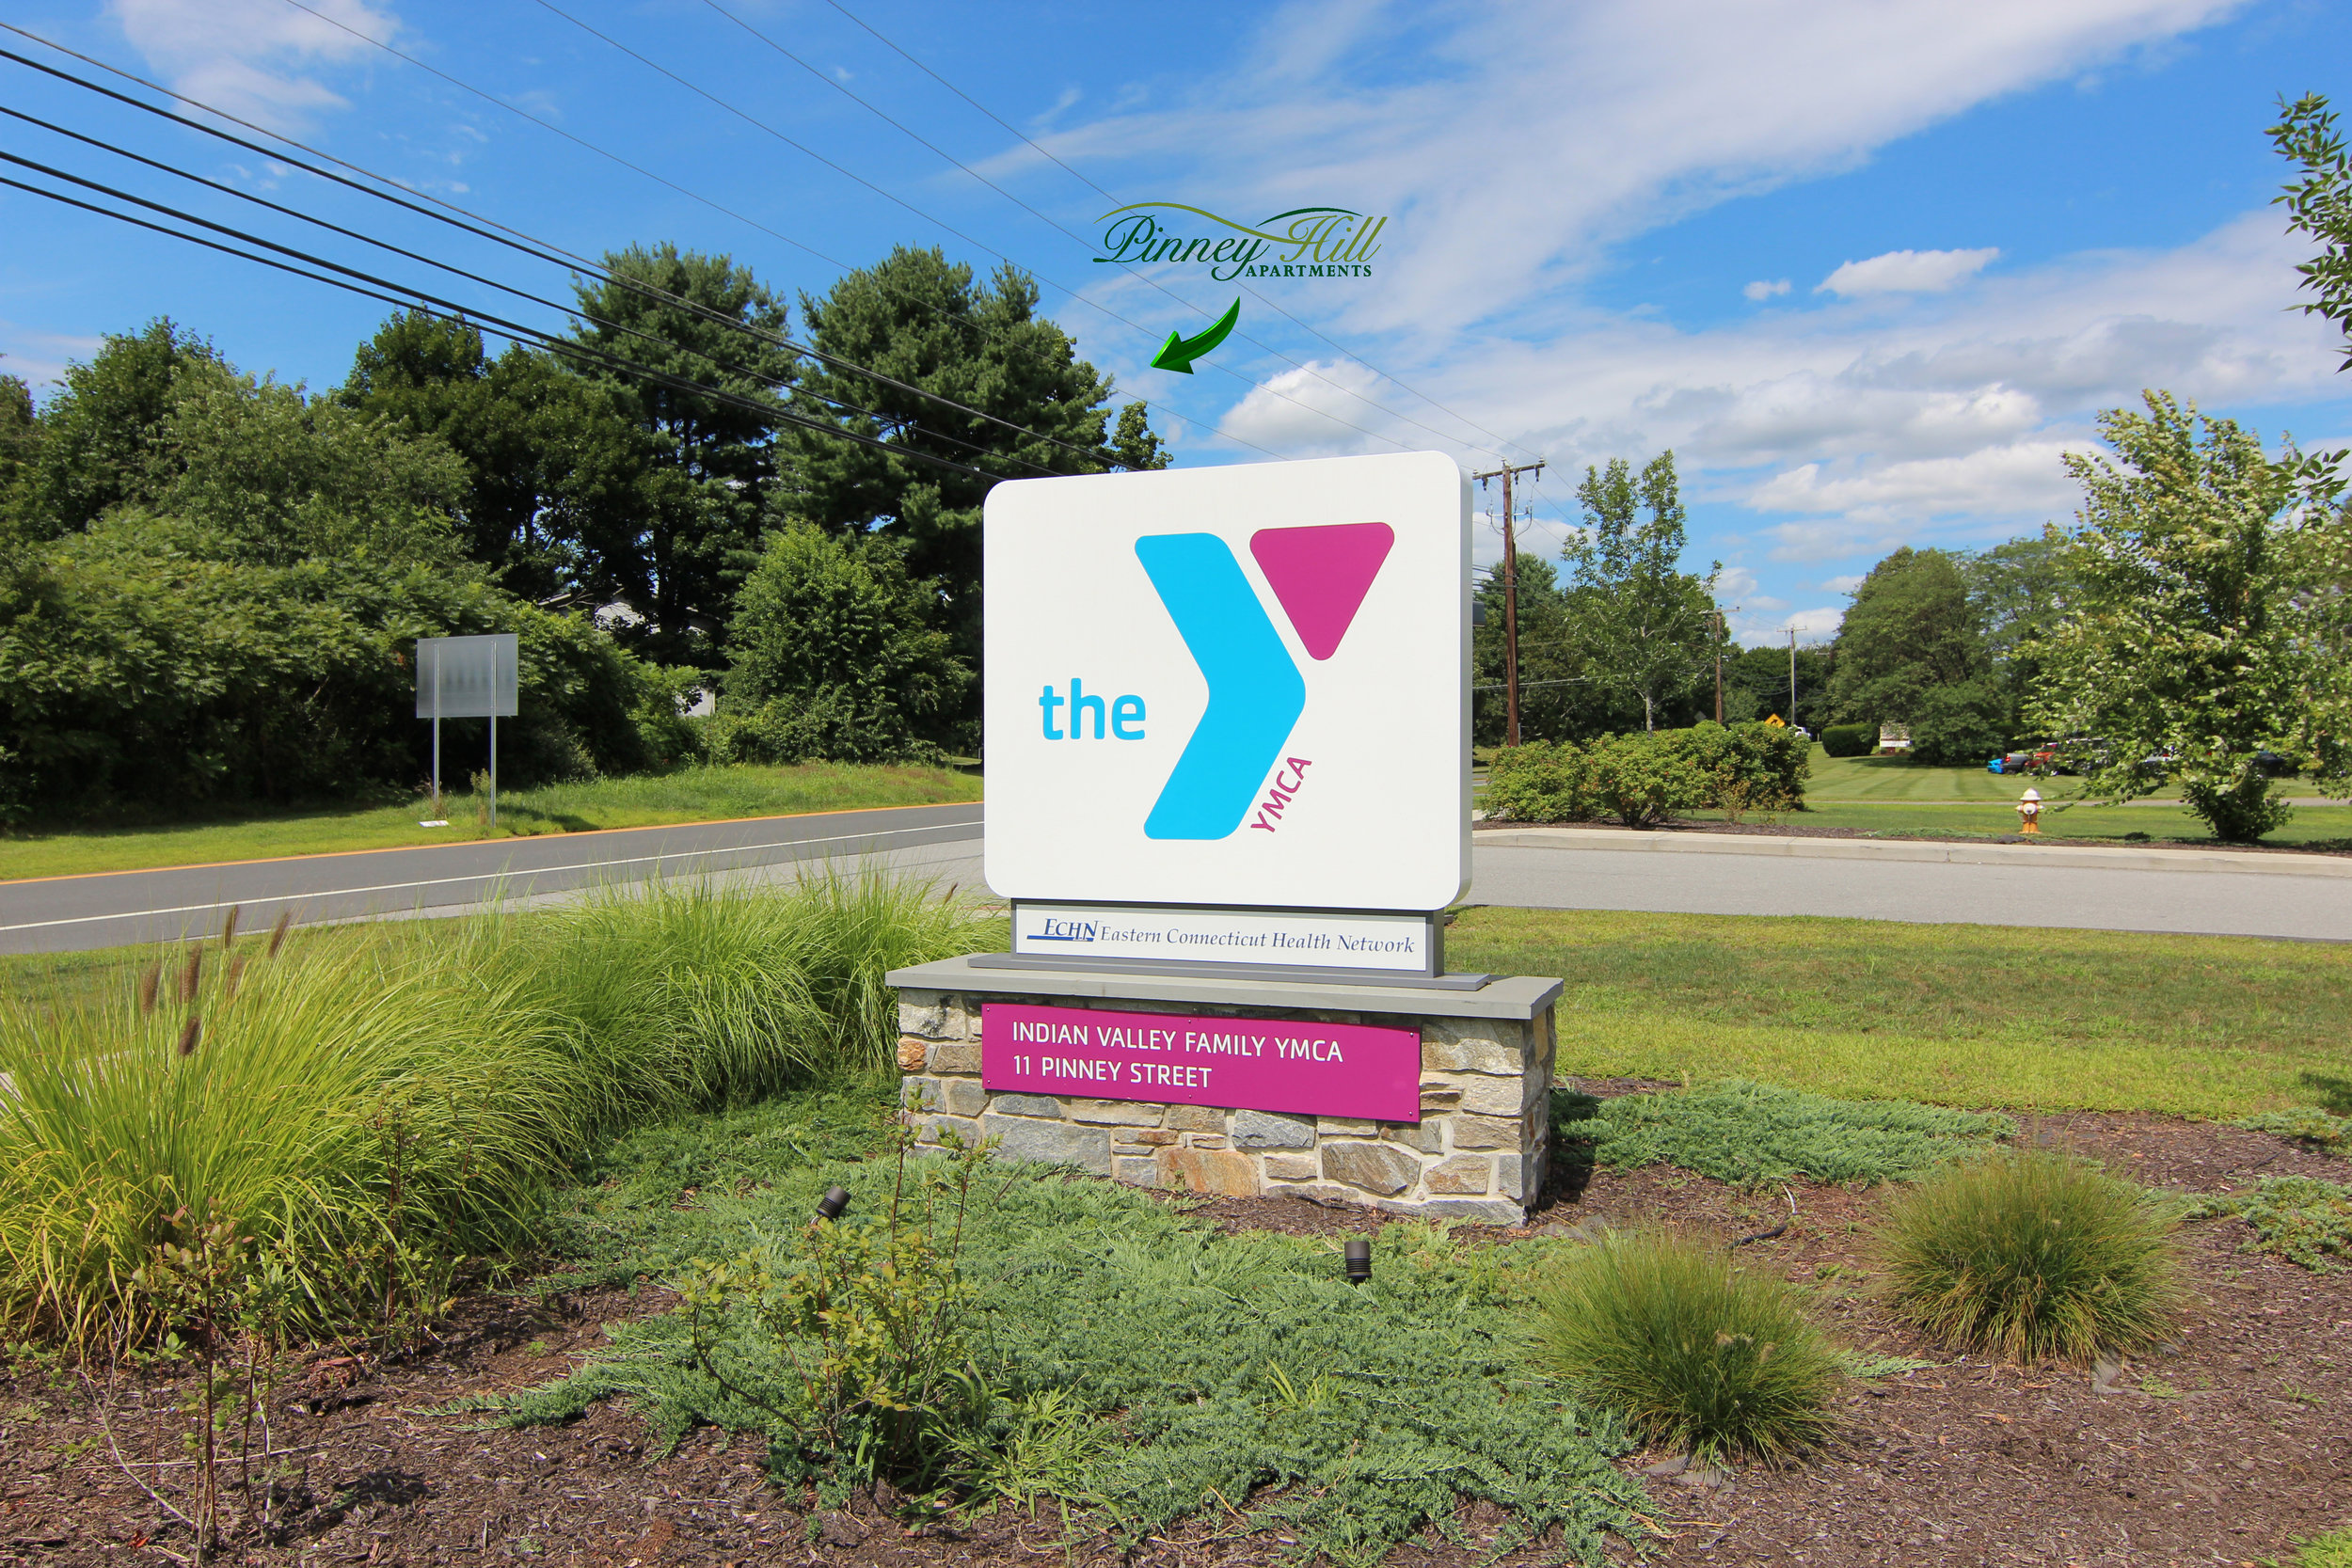 Image of the local YMCA sign with an arrow pointing to trees where Pinney Hill is located across the street.